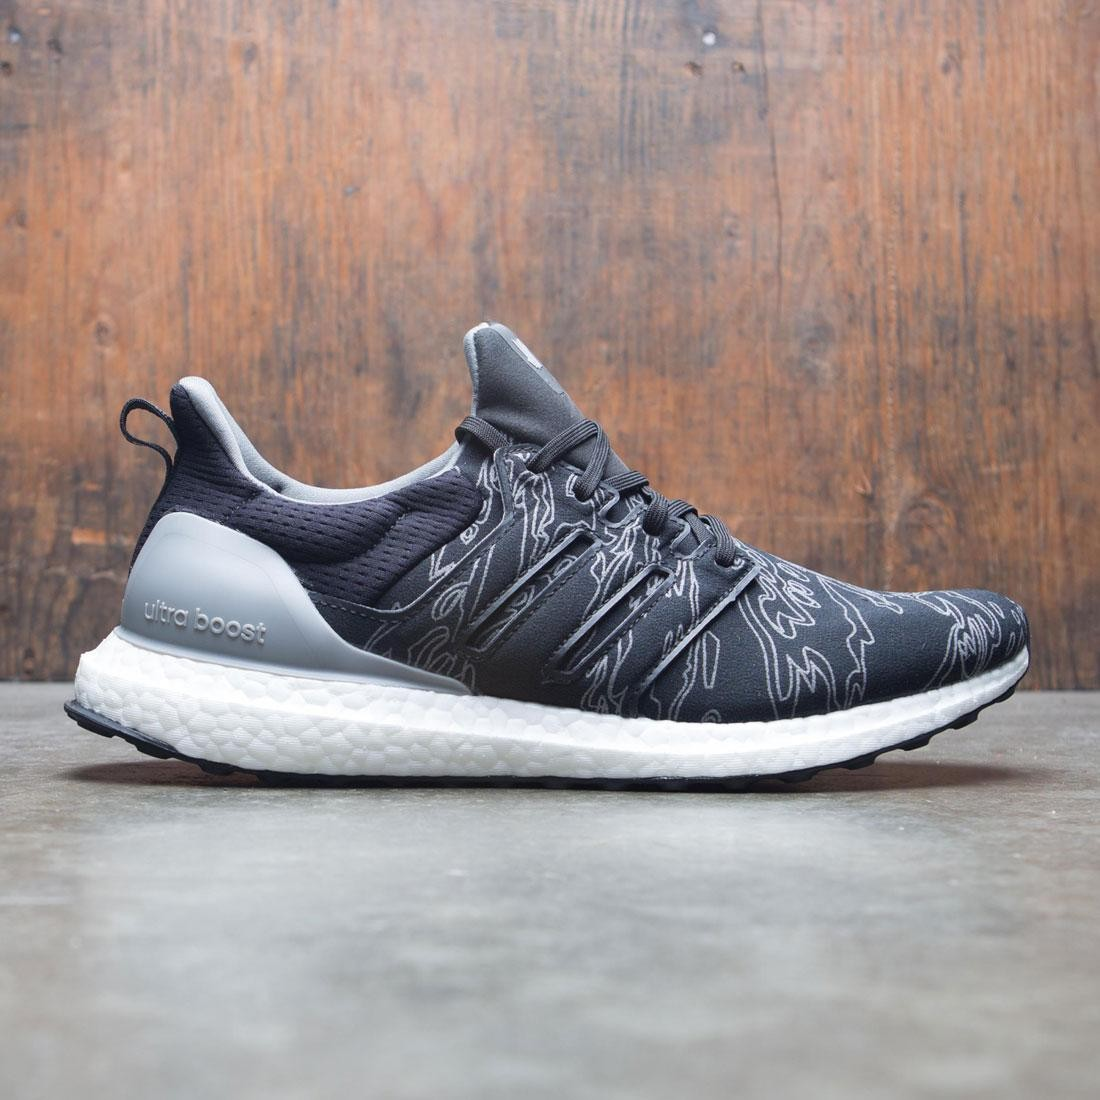 Adidas x Undefeated Men UltraBOOST (black / clear onix)